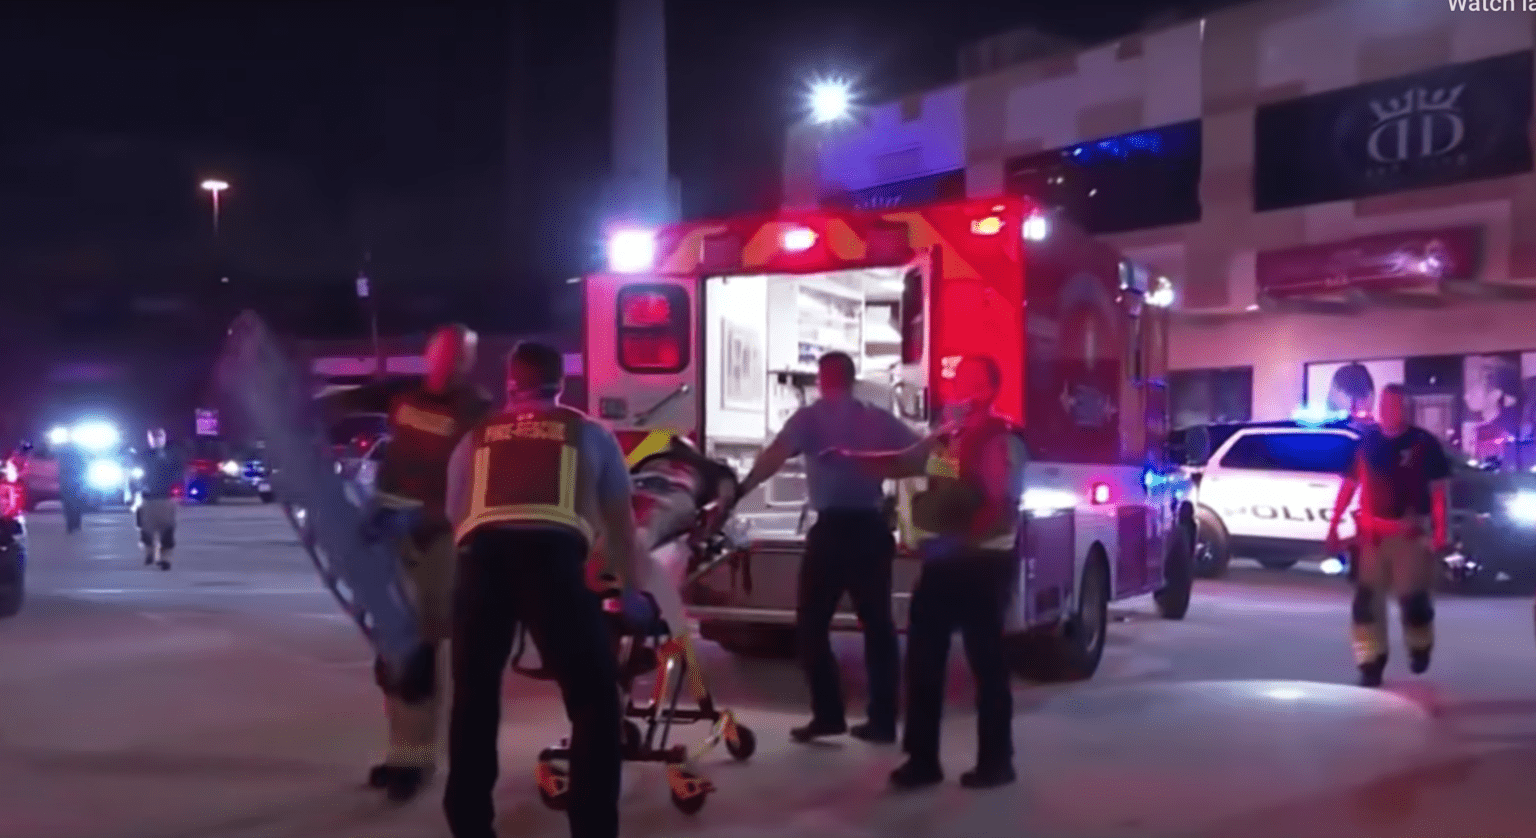 Three people shot dead during a party at nightclub in Democrat-run Houston